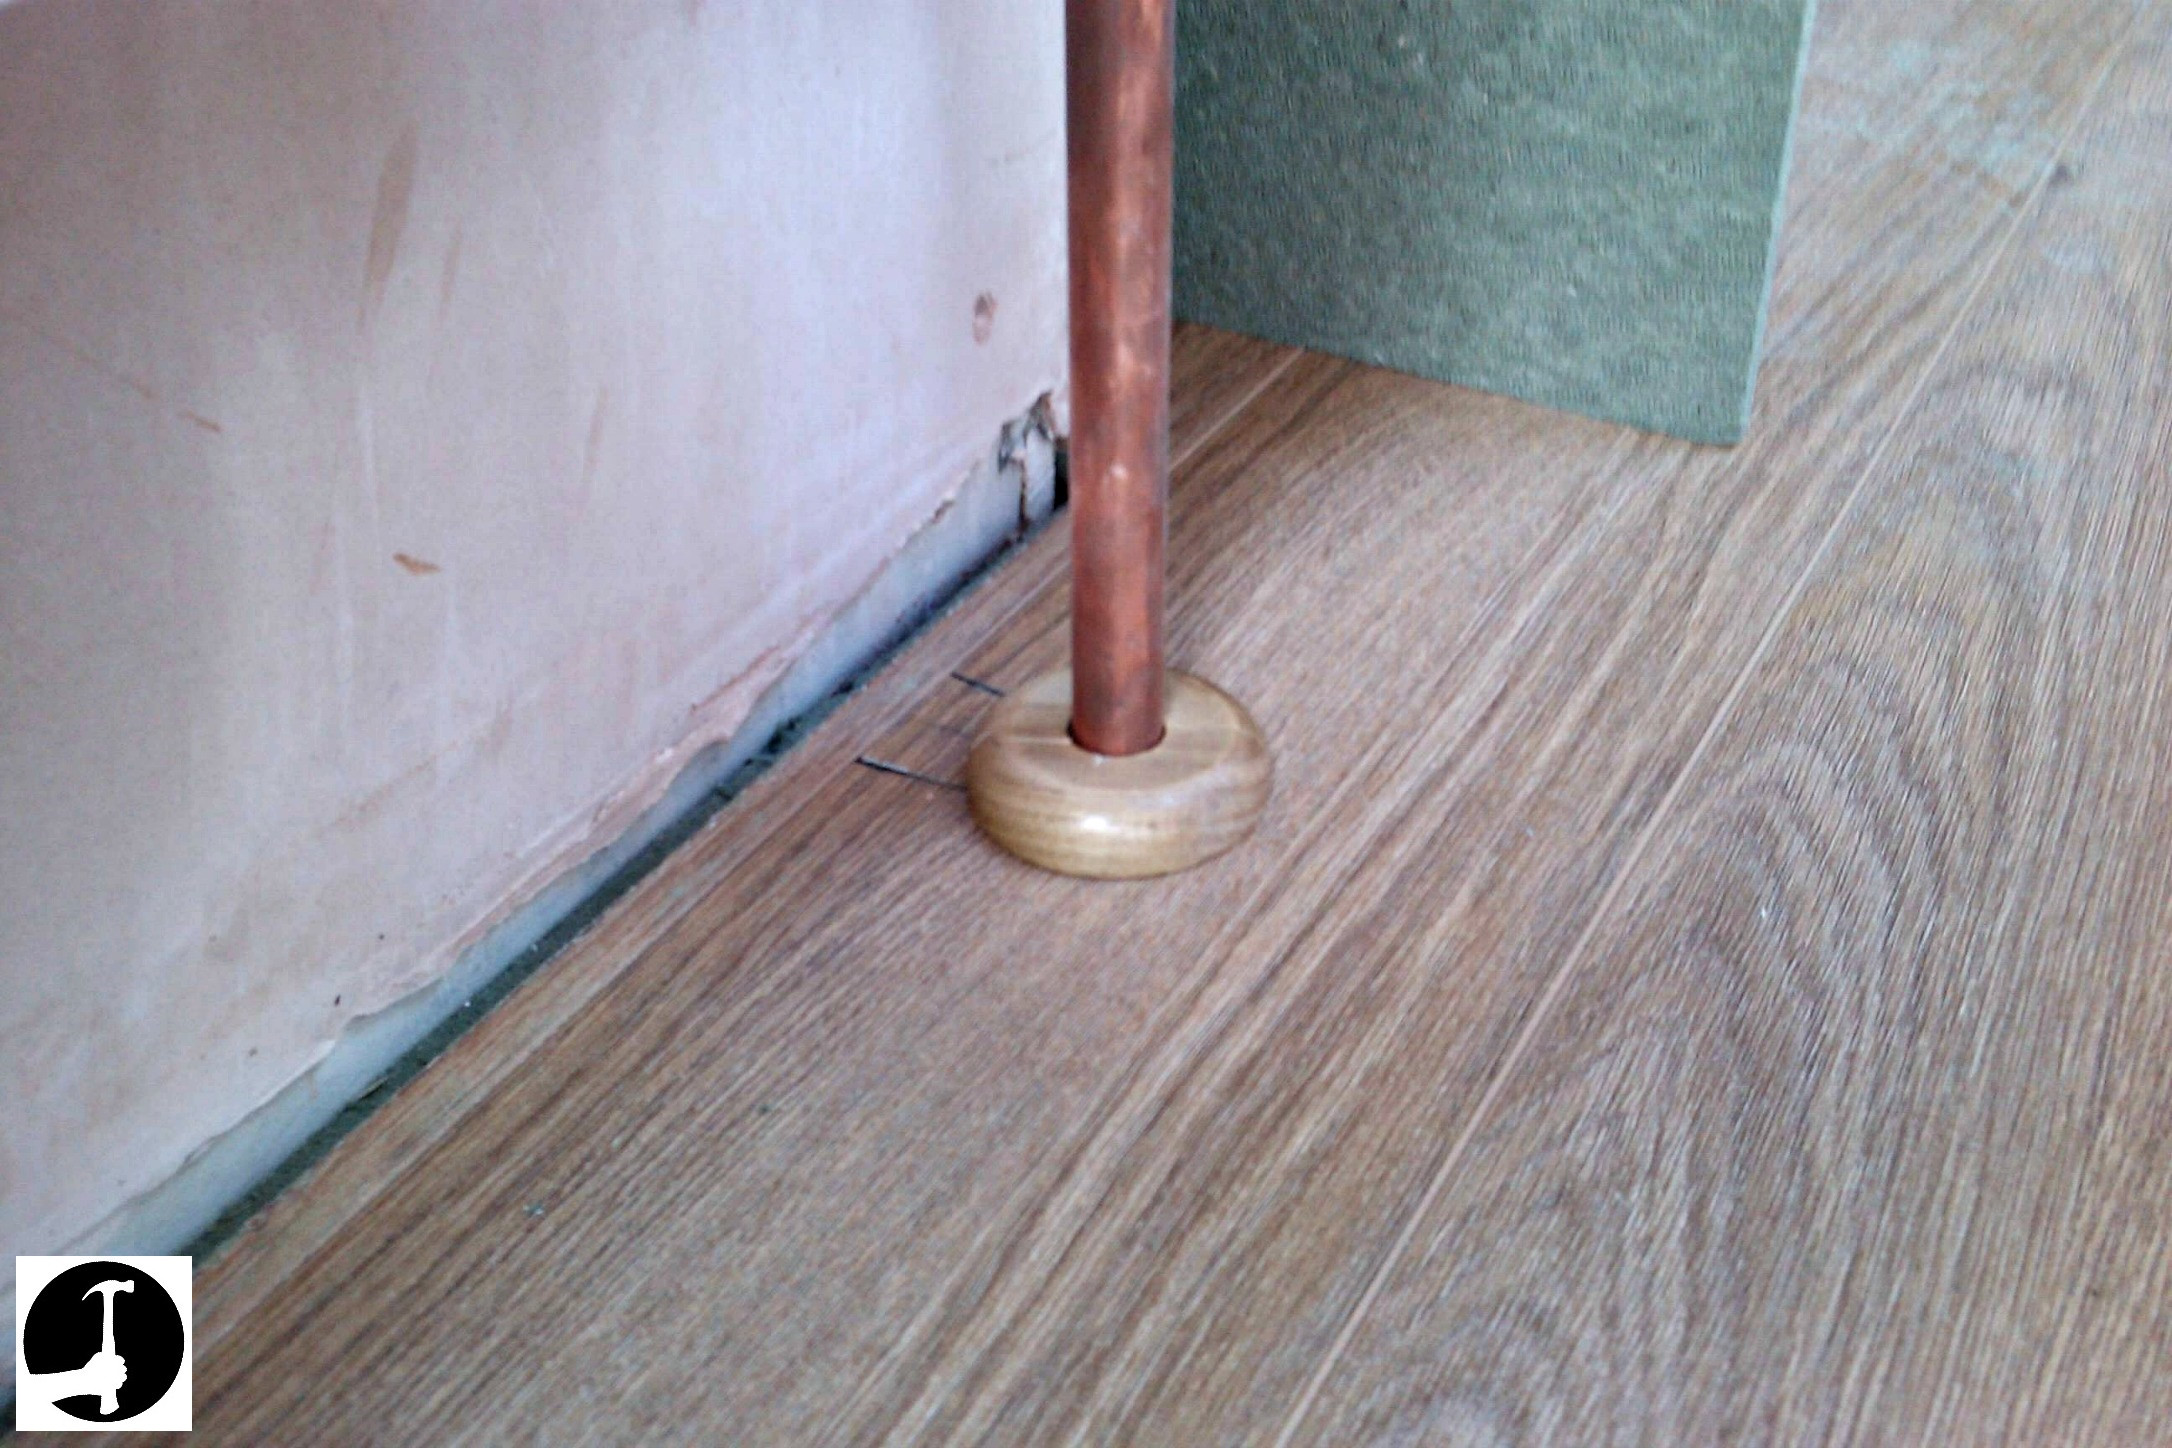 engineered hardwood flooring installation tools of how to install laminate flooring with ease glued glue less systems in how to cut laminate around pipes